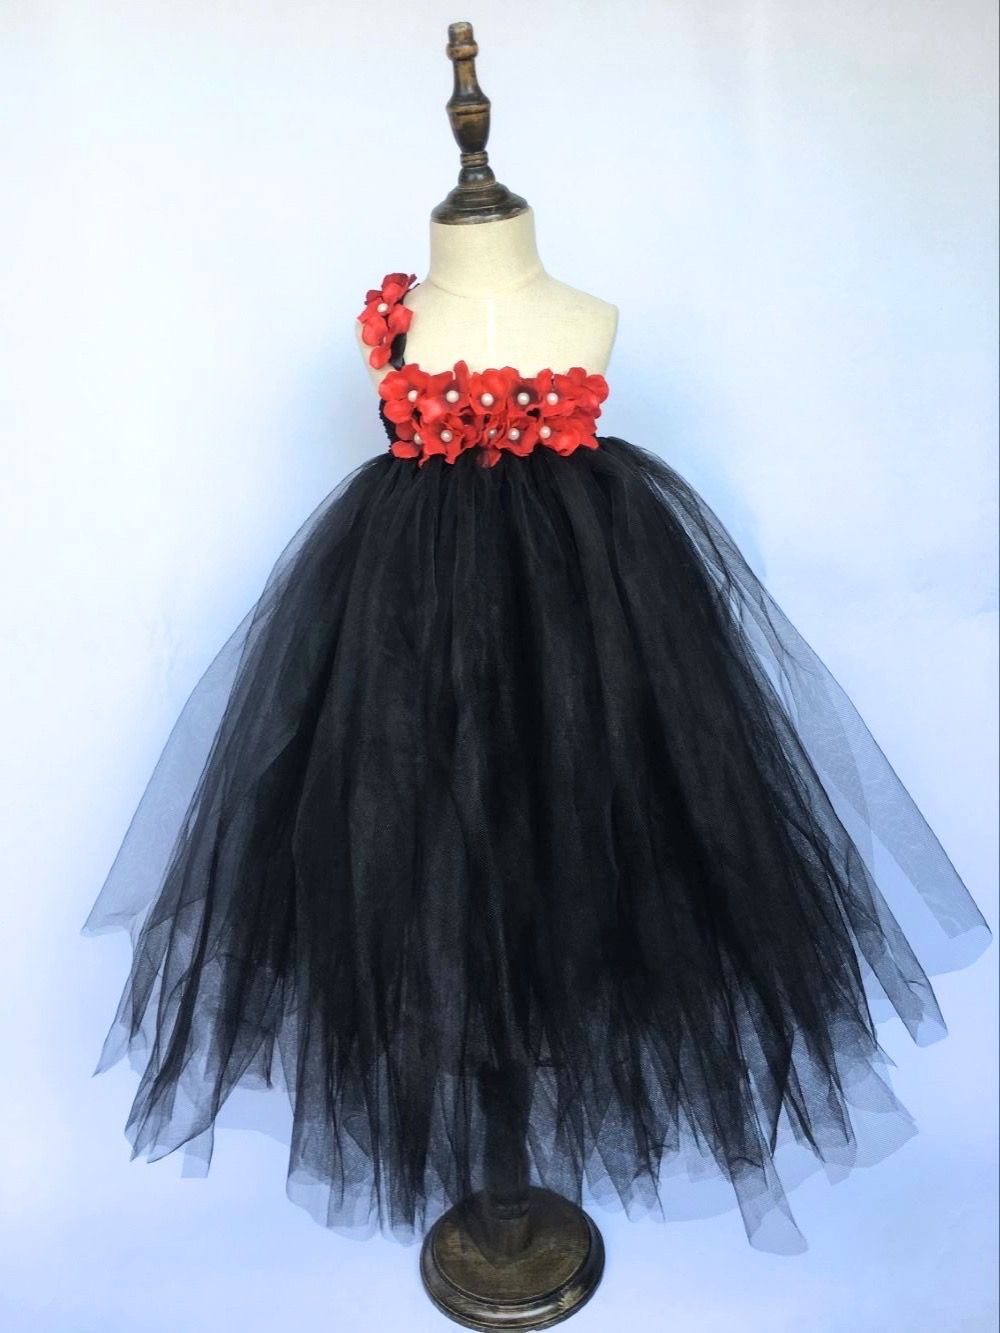 c226bed23d73d New Girls Black Tutu Dress Kids Fluffy Tulle Strap Dress Ball Gown ...